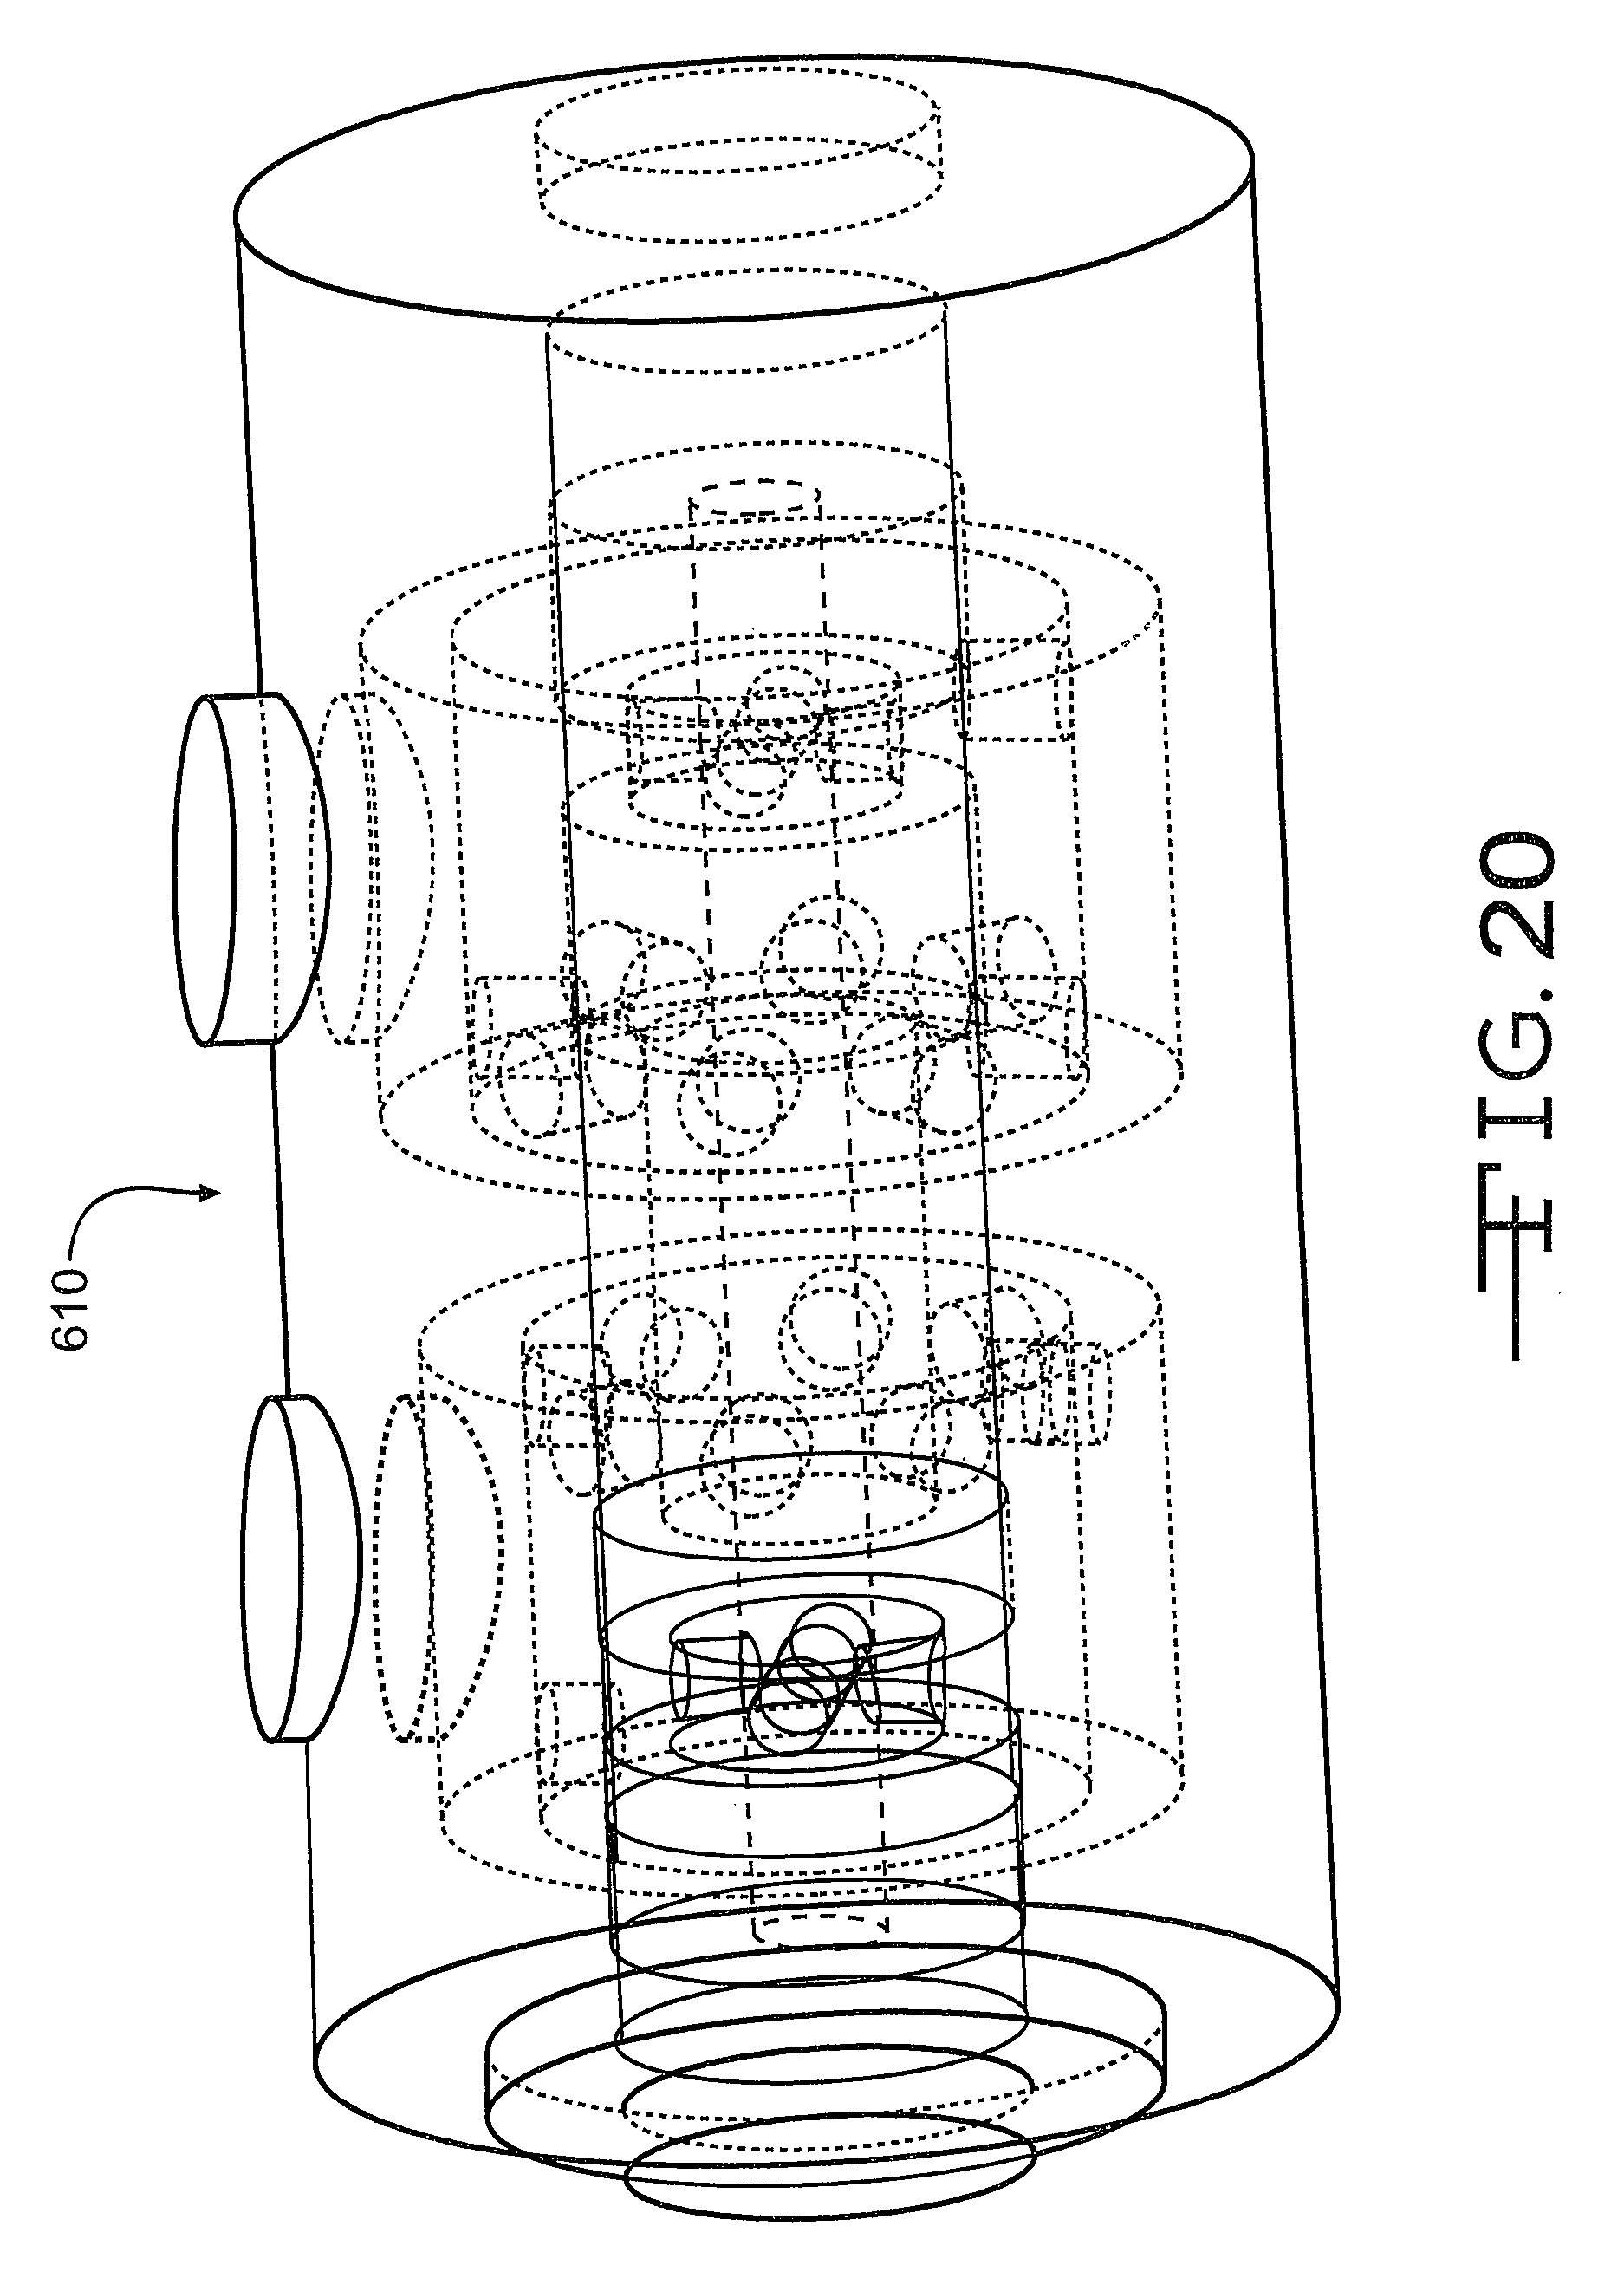 US08387659 20130305 D00011 patent us8387659 pilot operated spool valve google patents  at bakdesigns.co